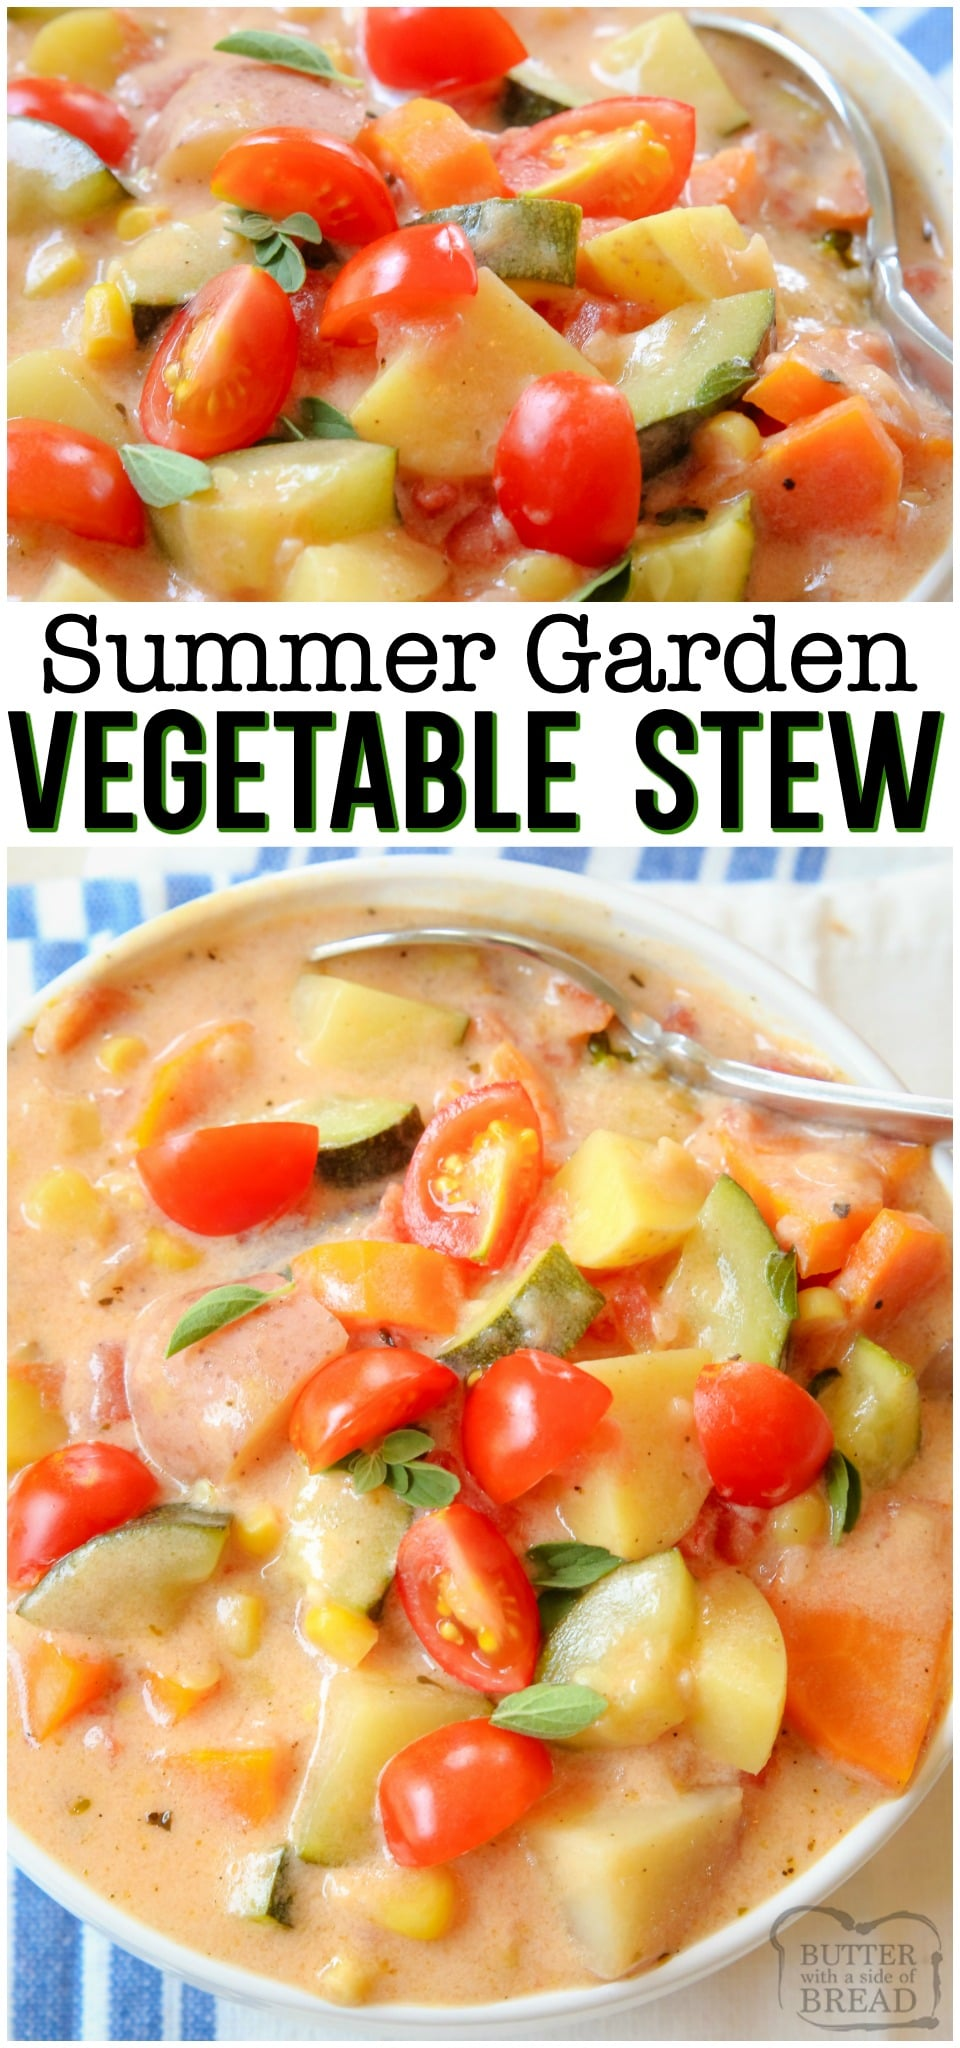 Summer Vegetable Stew is delicious, with tomatoes, zucchini, carrots and more. Fresh flavors perfect for a weeknight summer meal when the garden is overflowing. #garden #vegetable #stew #soup #freshvegetables #veggies #healthy #dinner #recipe from BUTTER WITH A SIDE OF BREAD